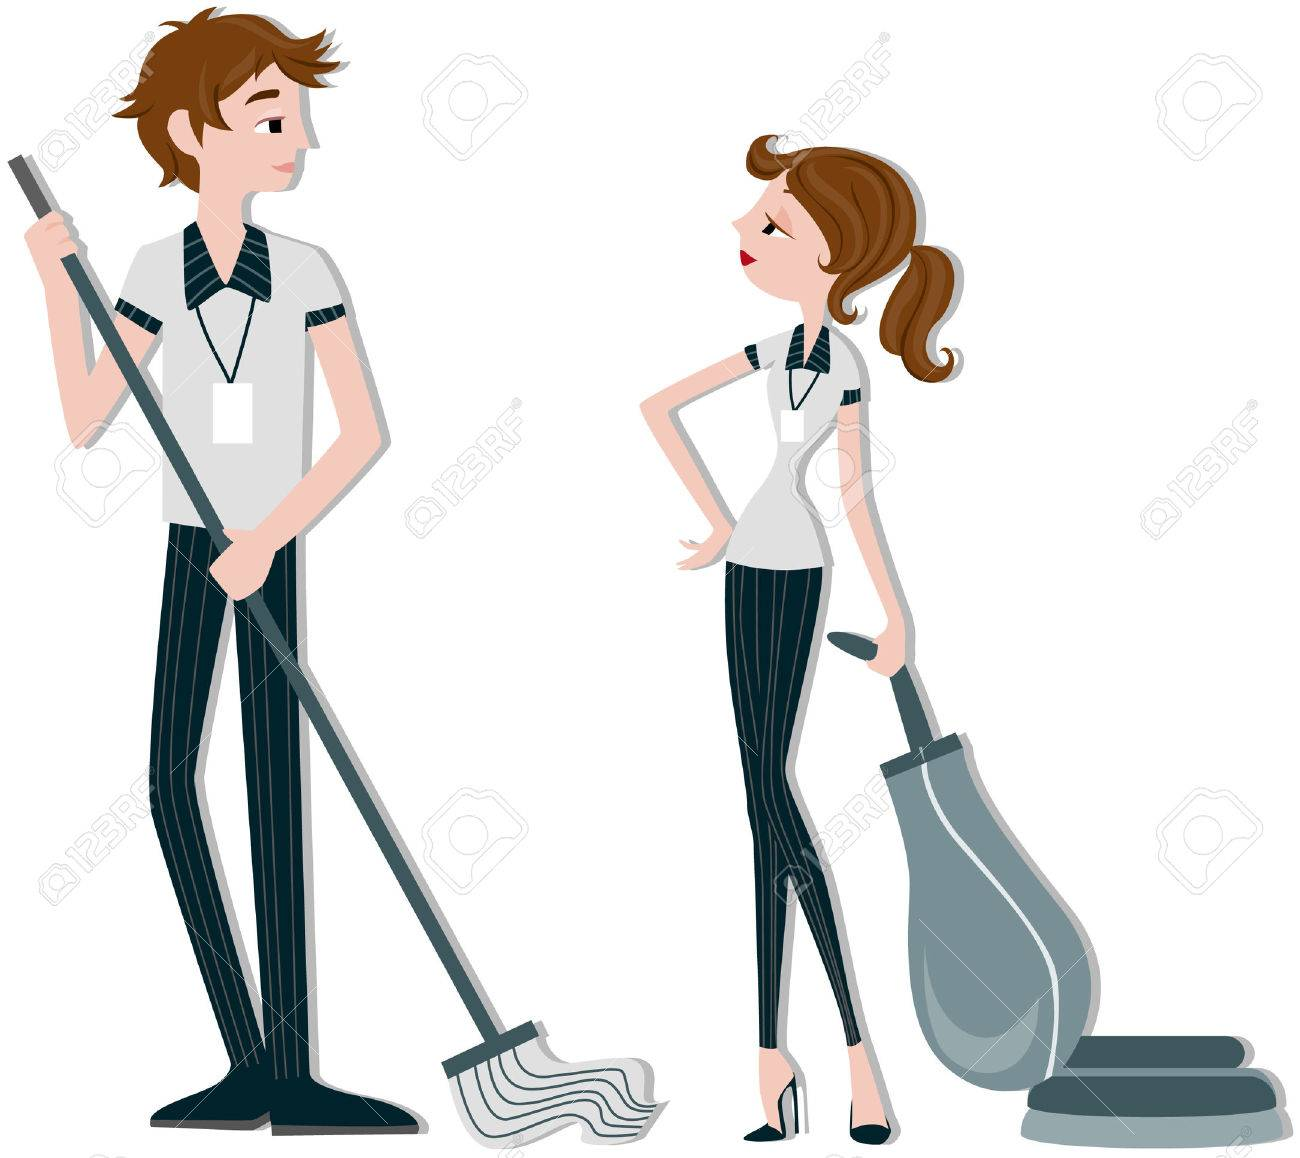 Cleaners Stock Vector - 5138099